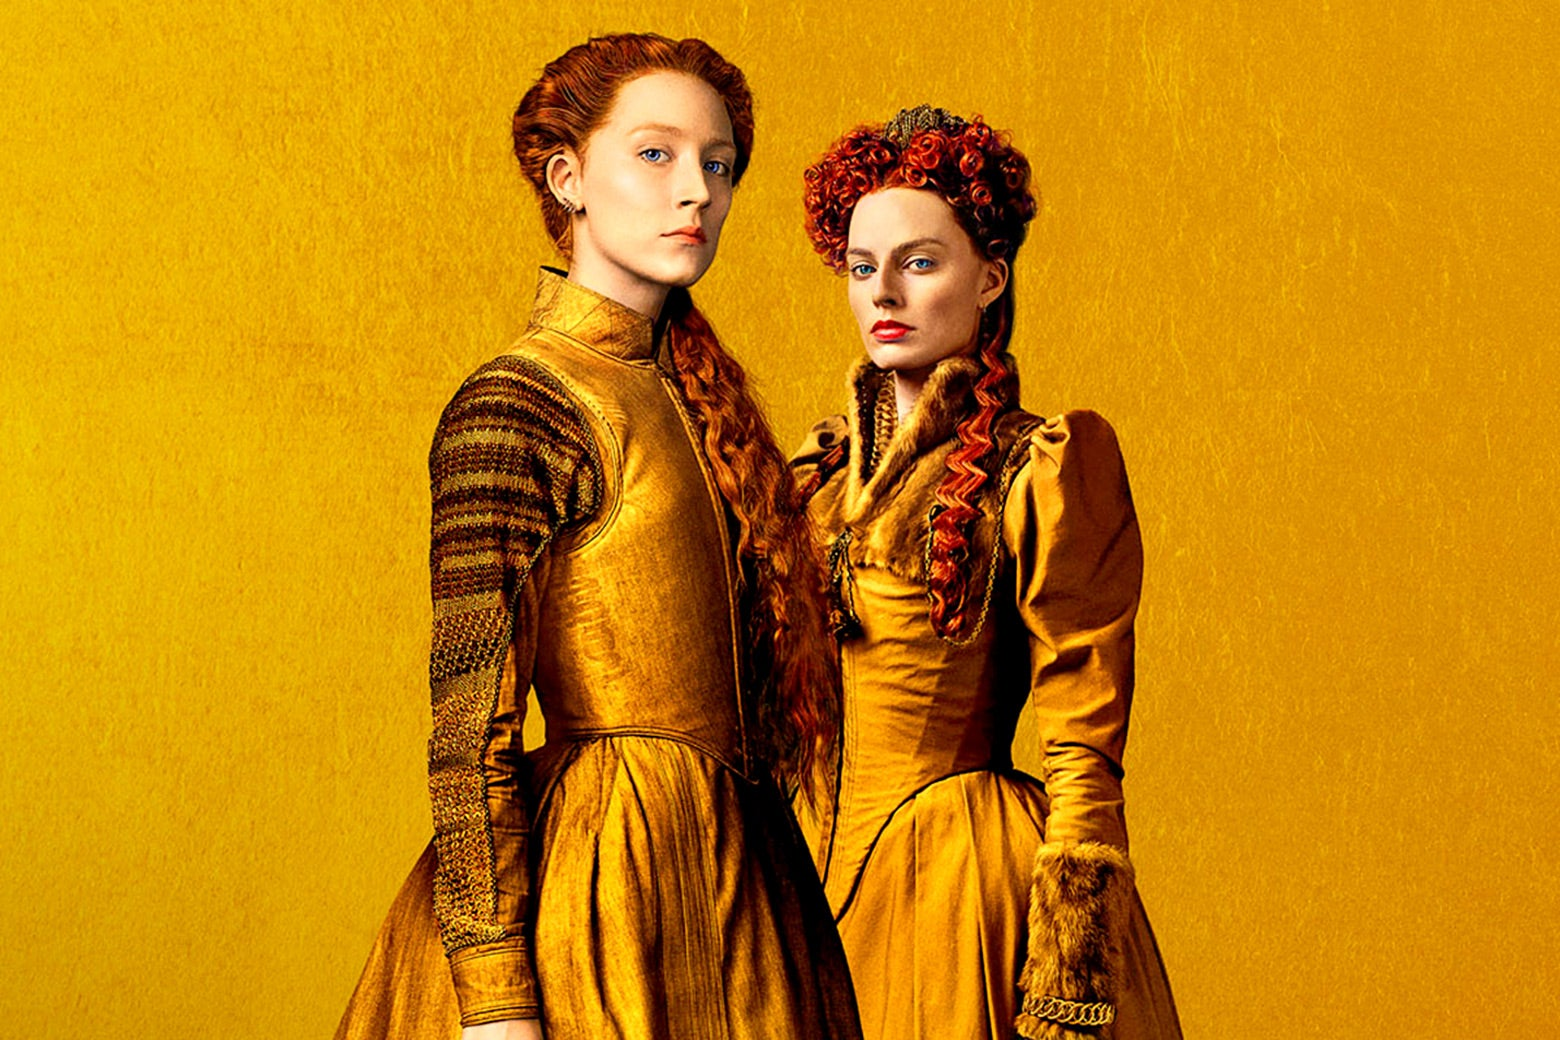 Saoirse Ronan and Margot Robbie in Mary Queen of Scots.